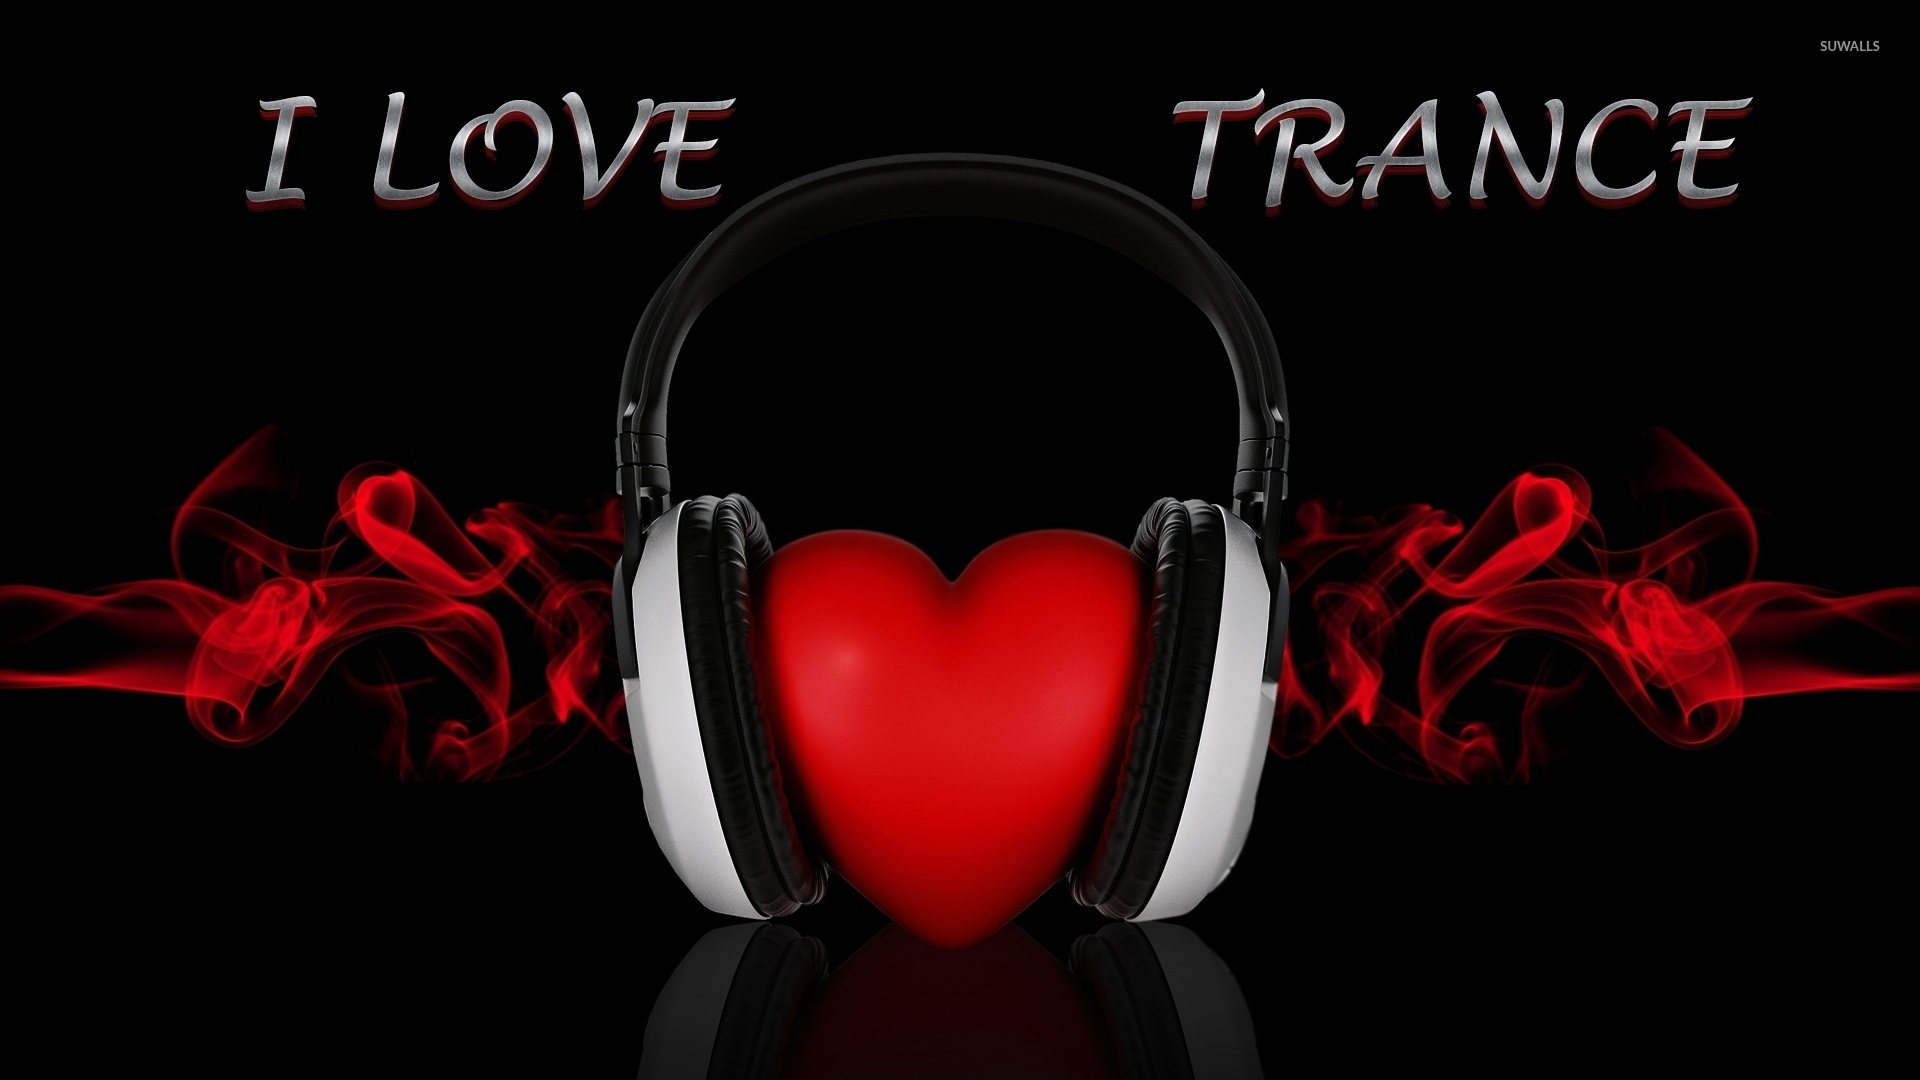 I love trance wallpaper - Music wallpapers - #45499